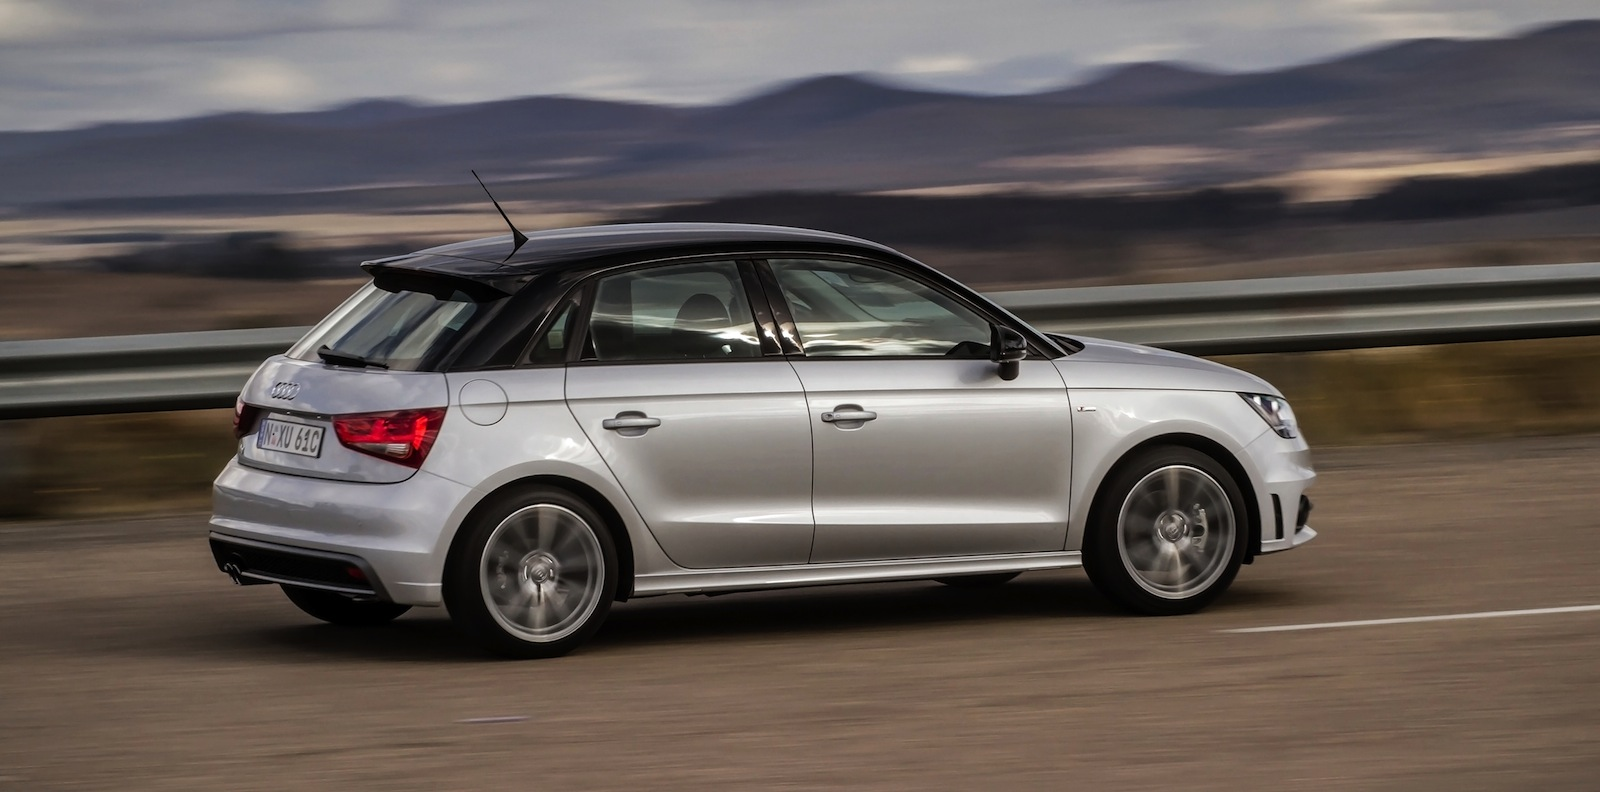 2013 Audi A1 sportback (8xa) - pictures, information and ...